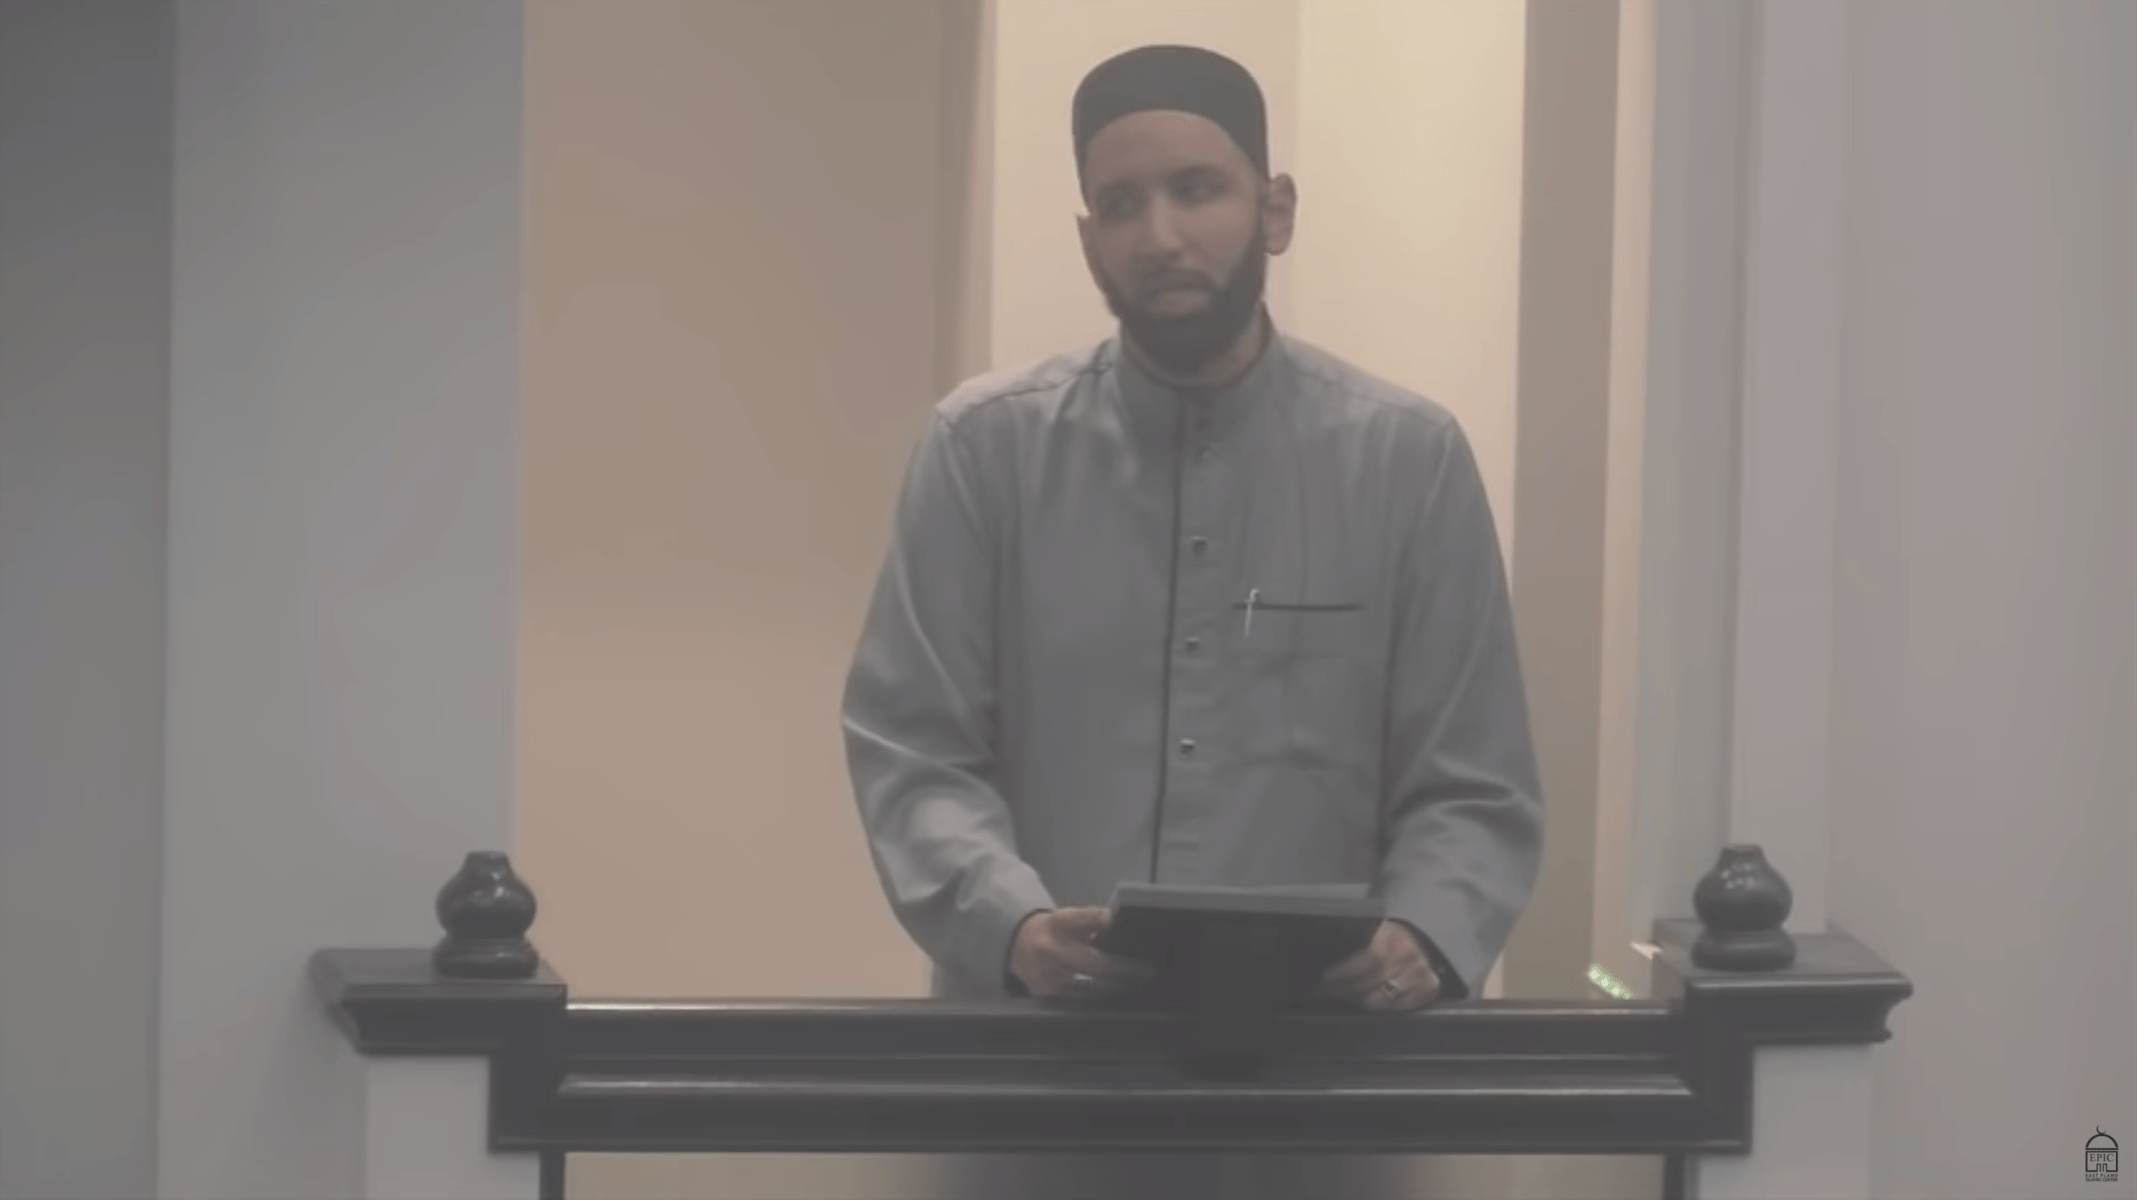 Omar Suleiman – Reviving Righteousness in Difficult Times